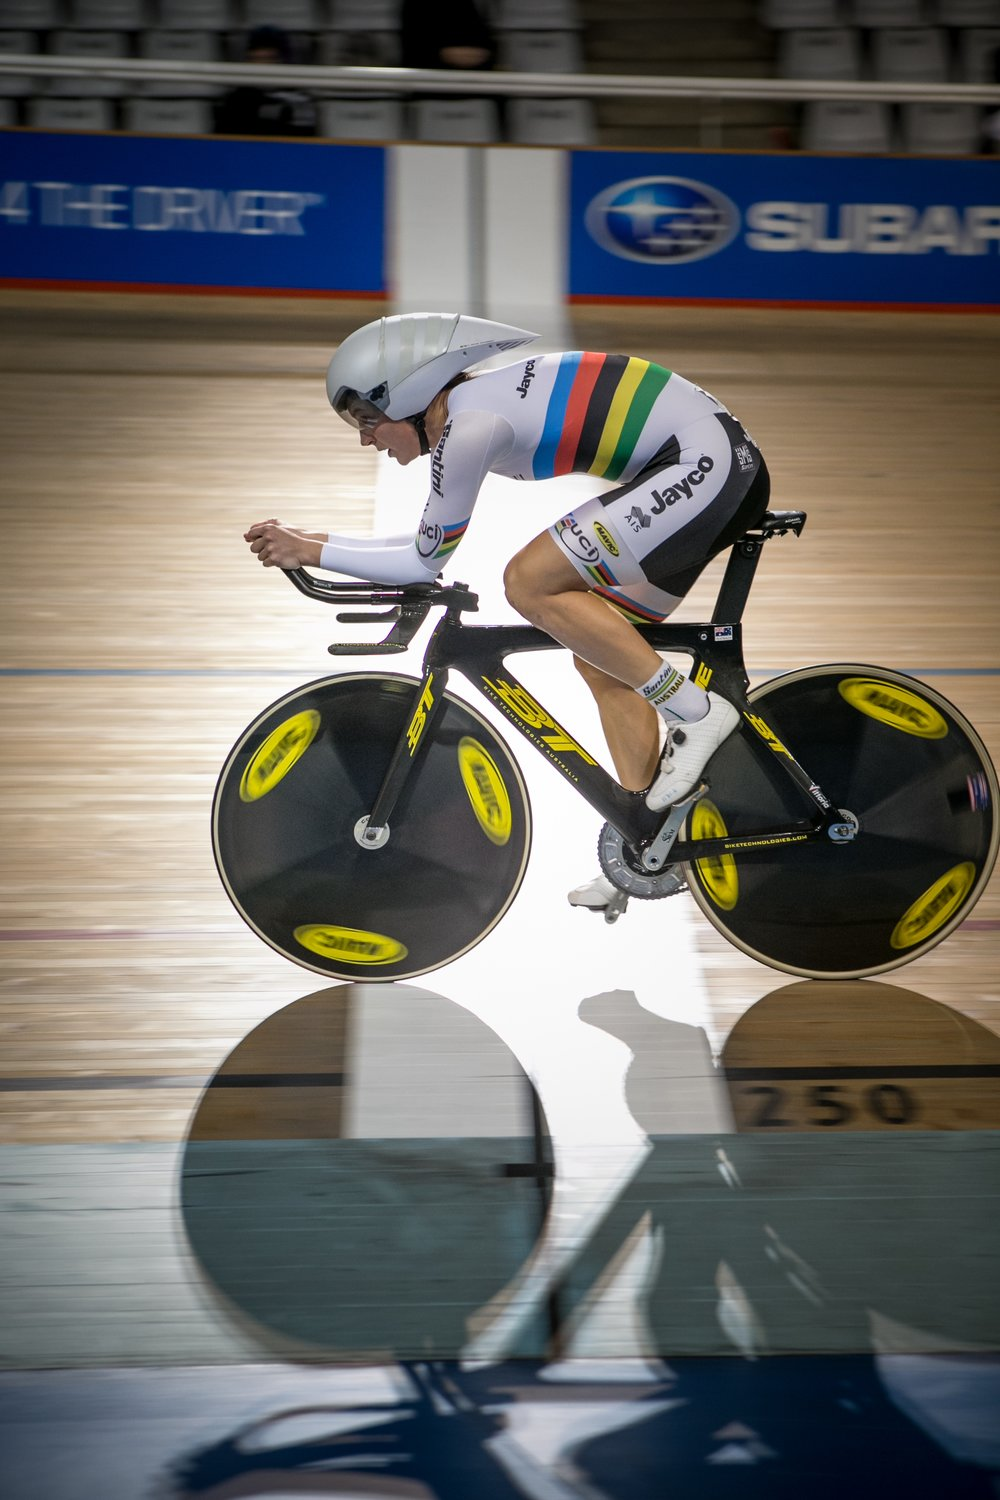 2015 International Track Series - Adelaide